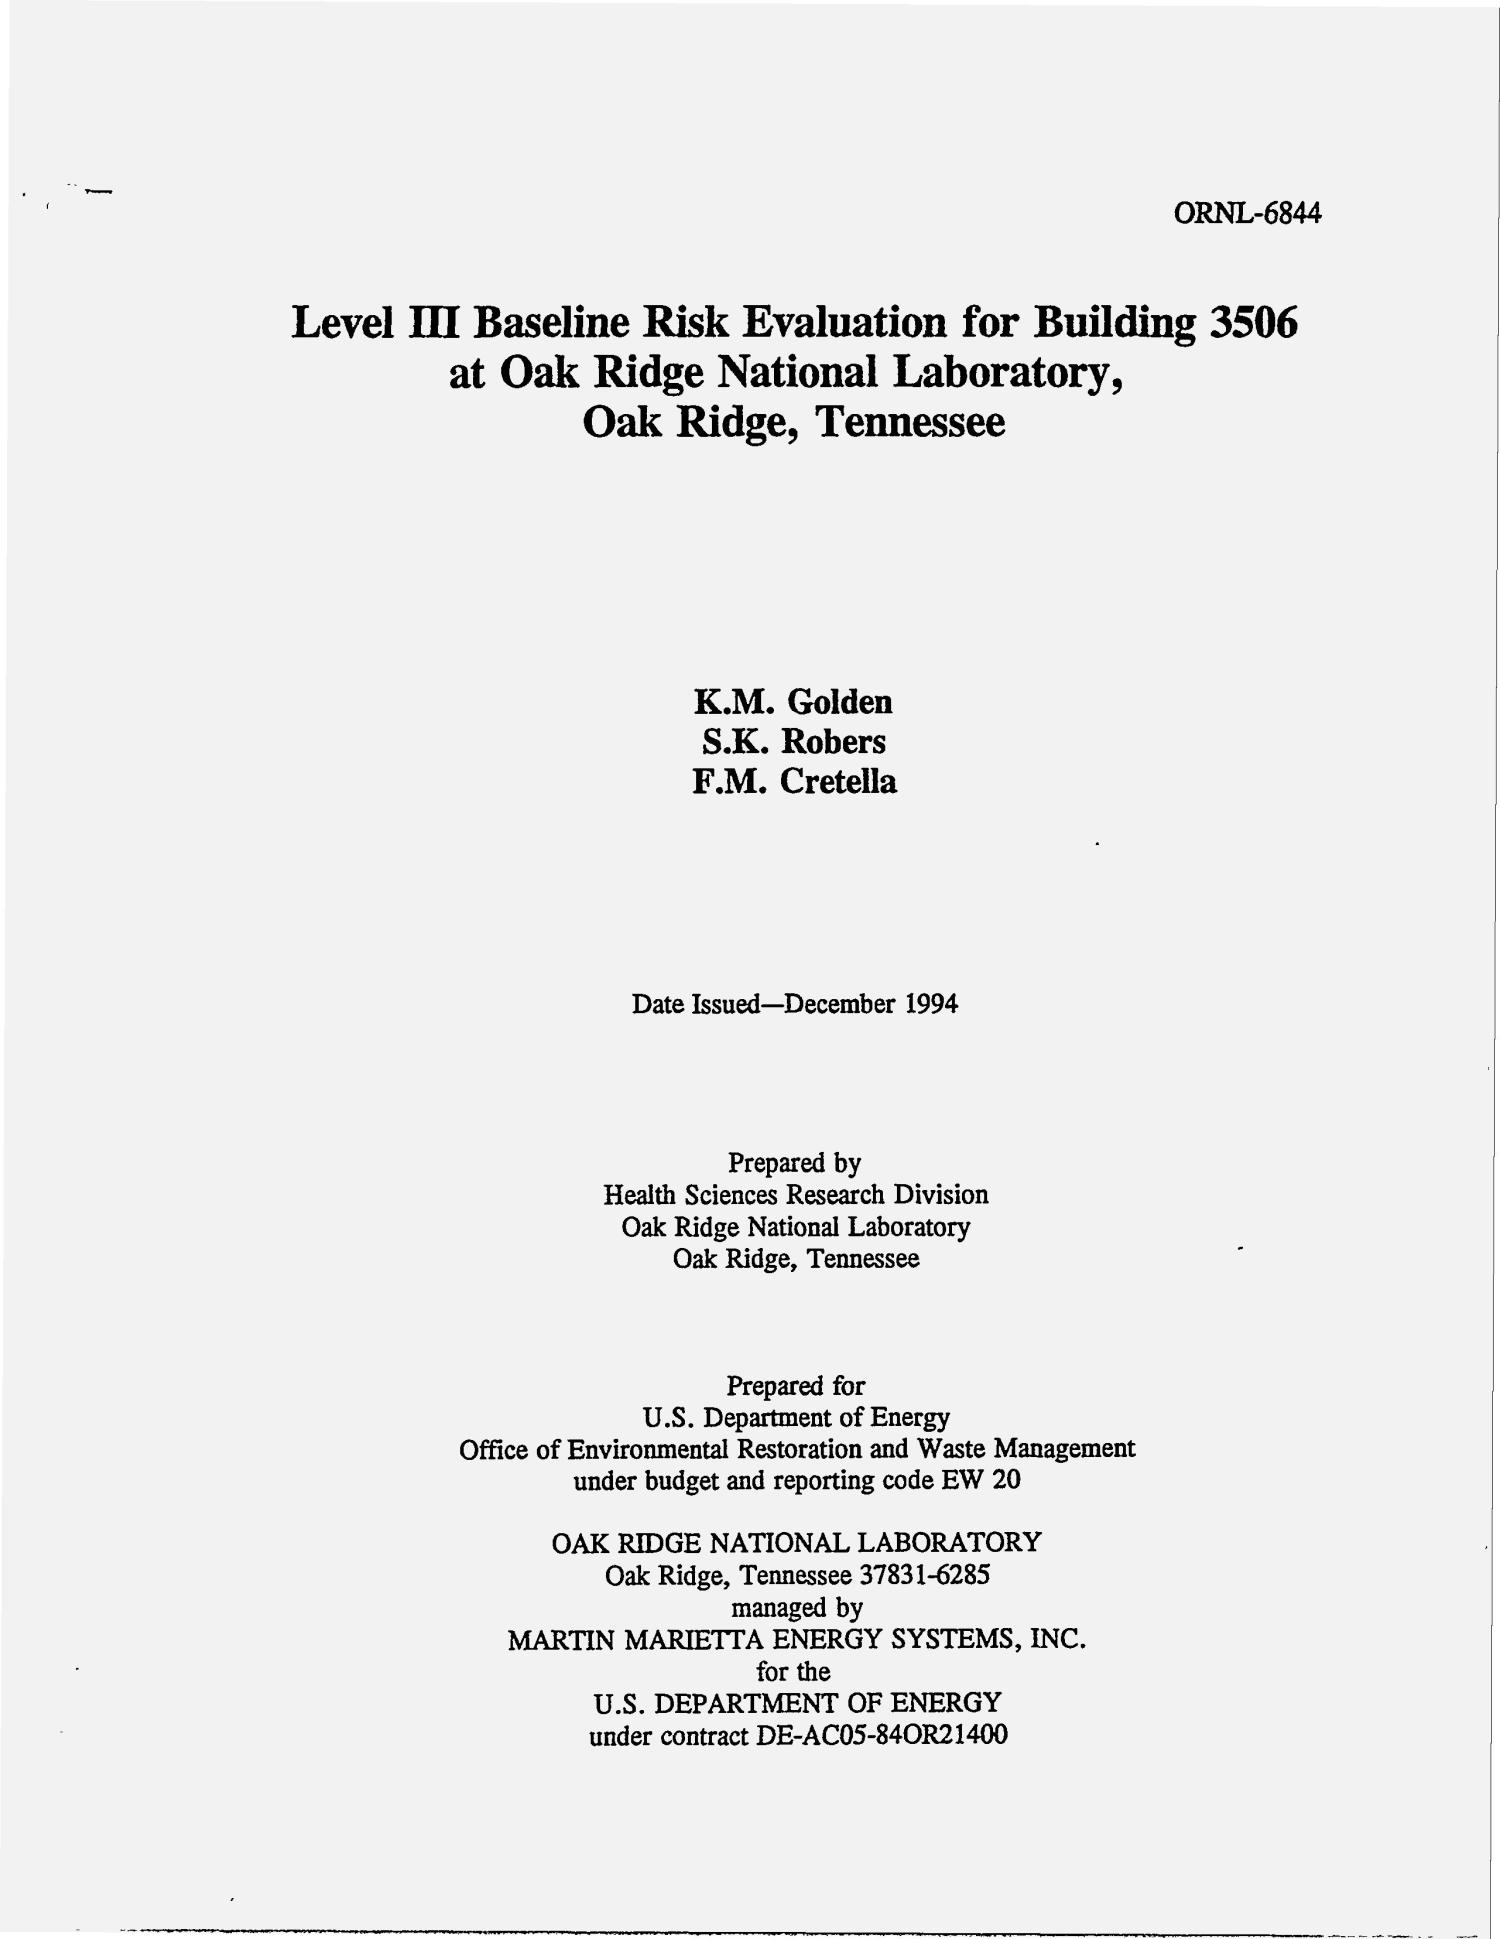 Level 3 baseline risk evaluation for Building 3506 at Oak Ridge National Laboratory, Oak Ridge, Tennessee                                                                                                      [Sequence #]: 4 of 367